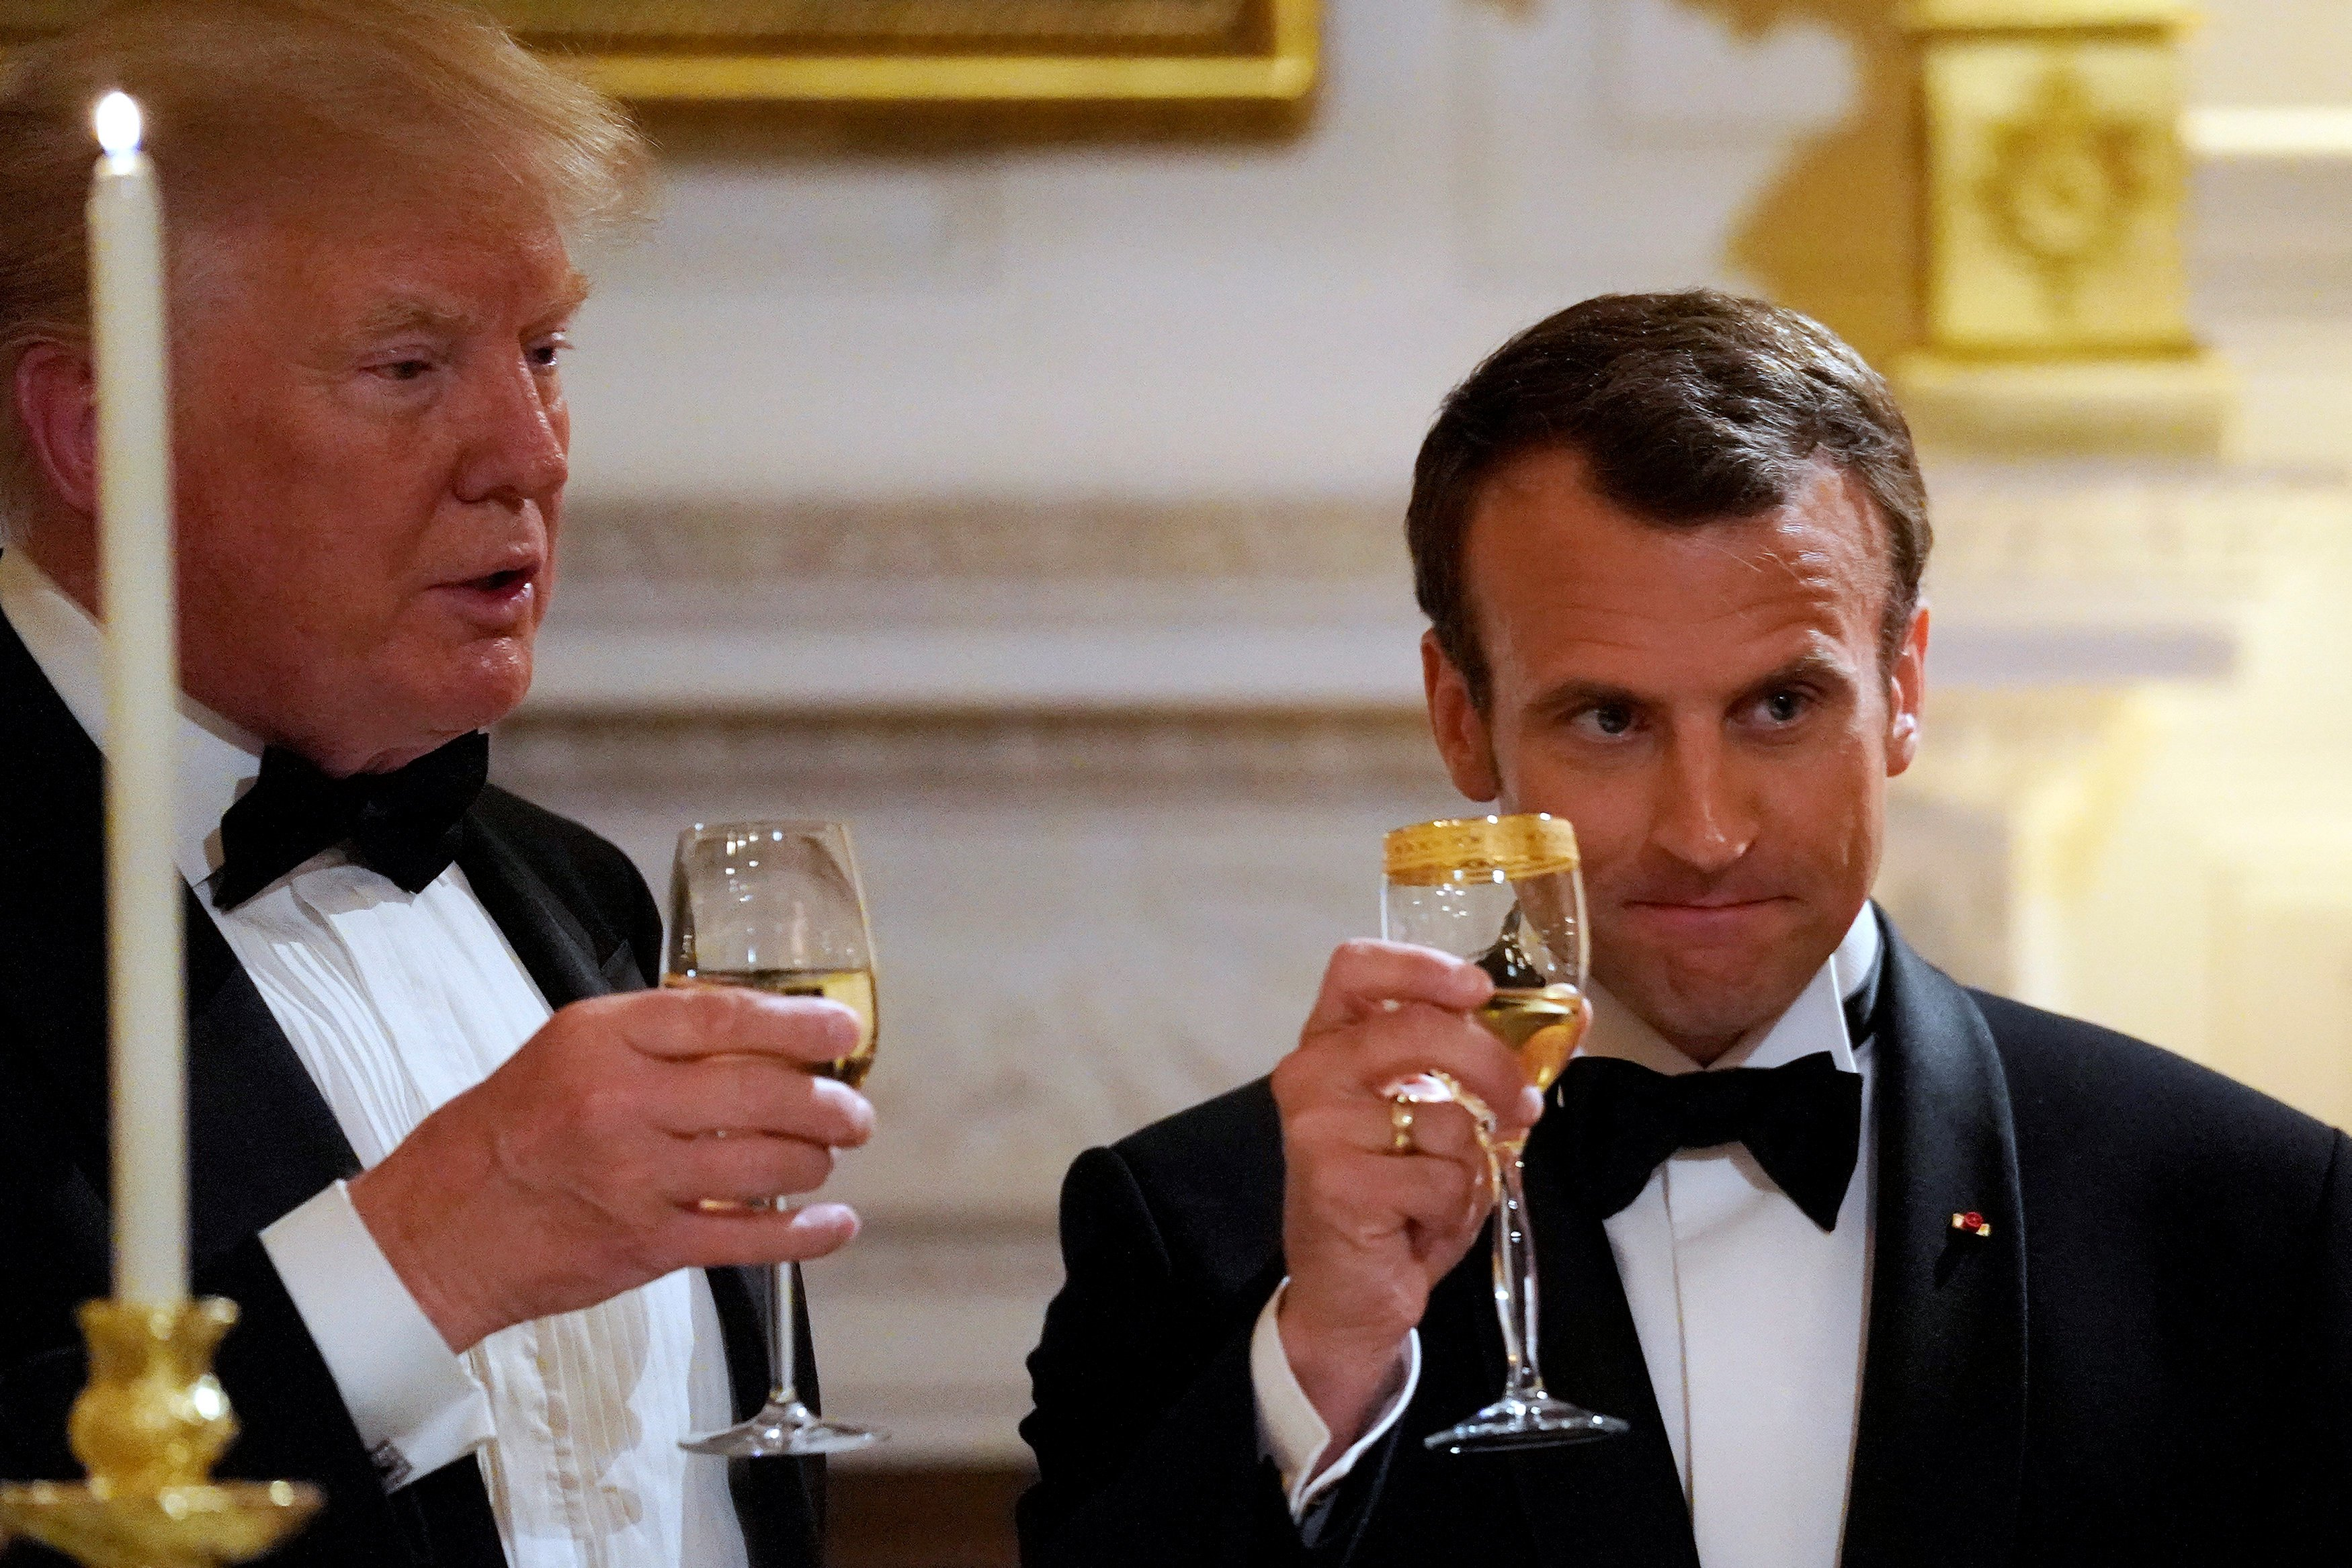 French President Emmanuel Macron toasts U.S. President Donald Trump during a State Dinner at the White House in Washington, U.S.